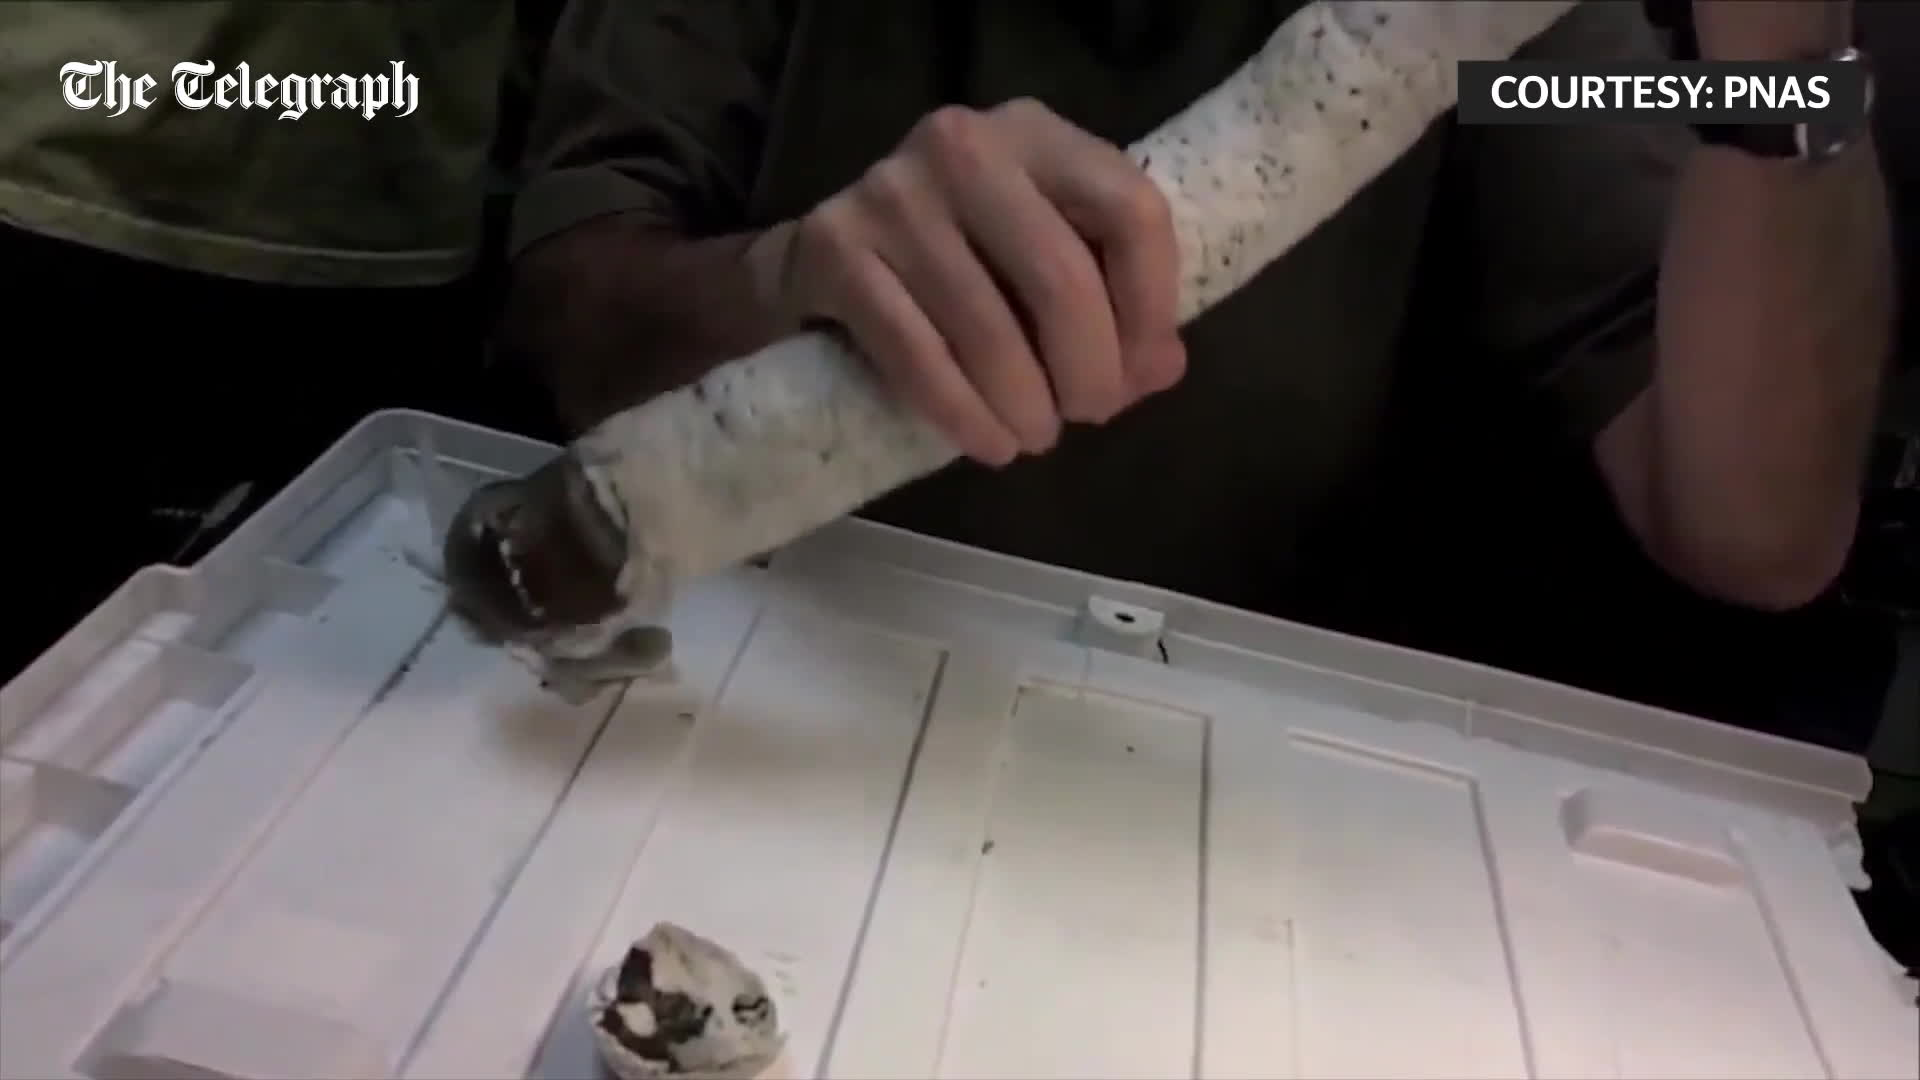 gifsthatendtoosoon, Scientists extract rare giant shipworm from shell in toe-curling video GIFs